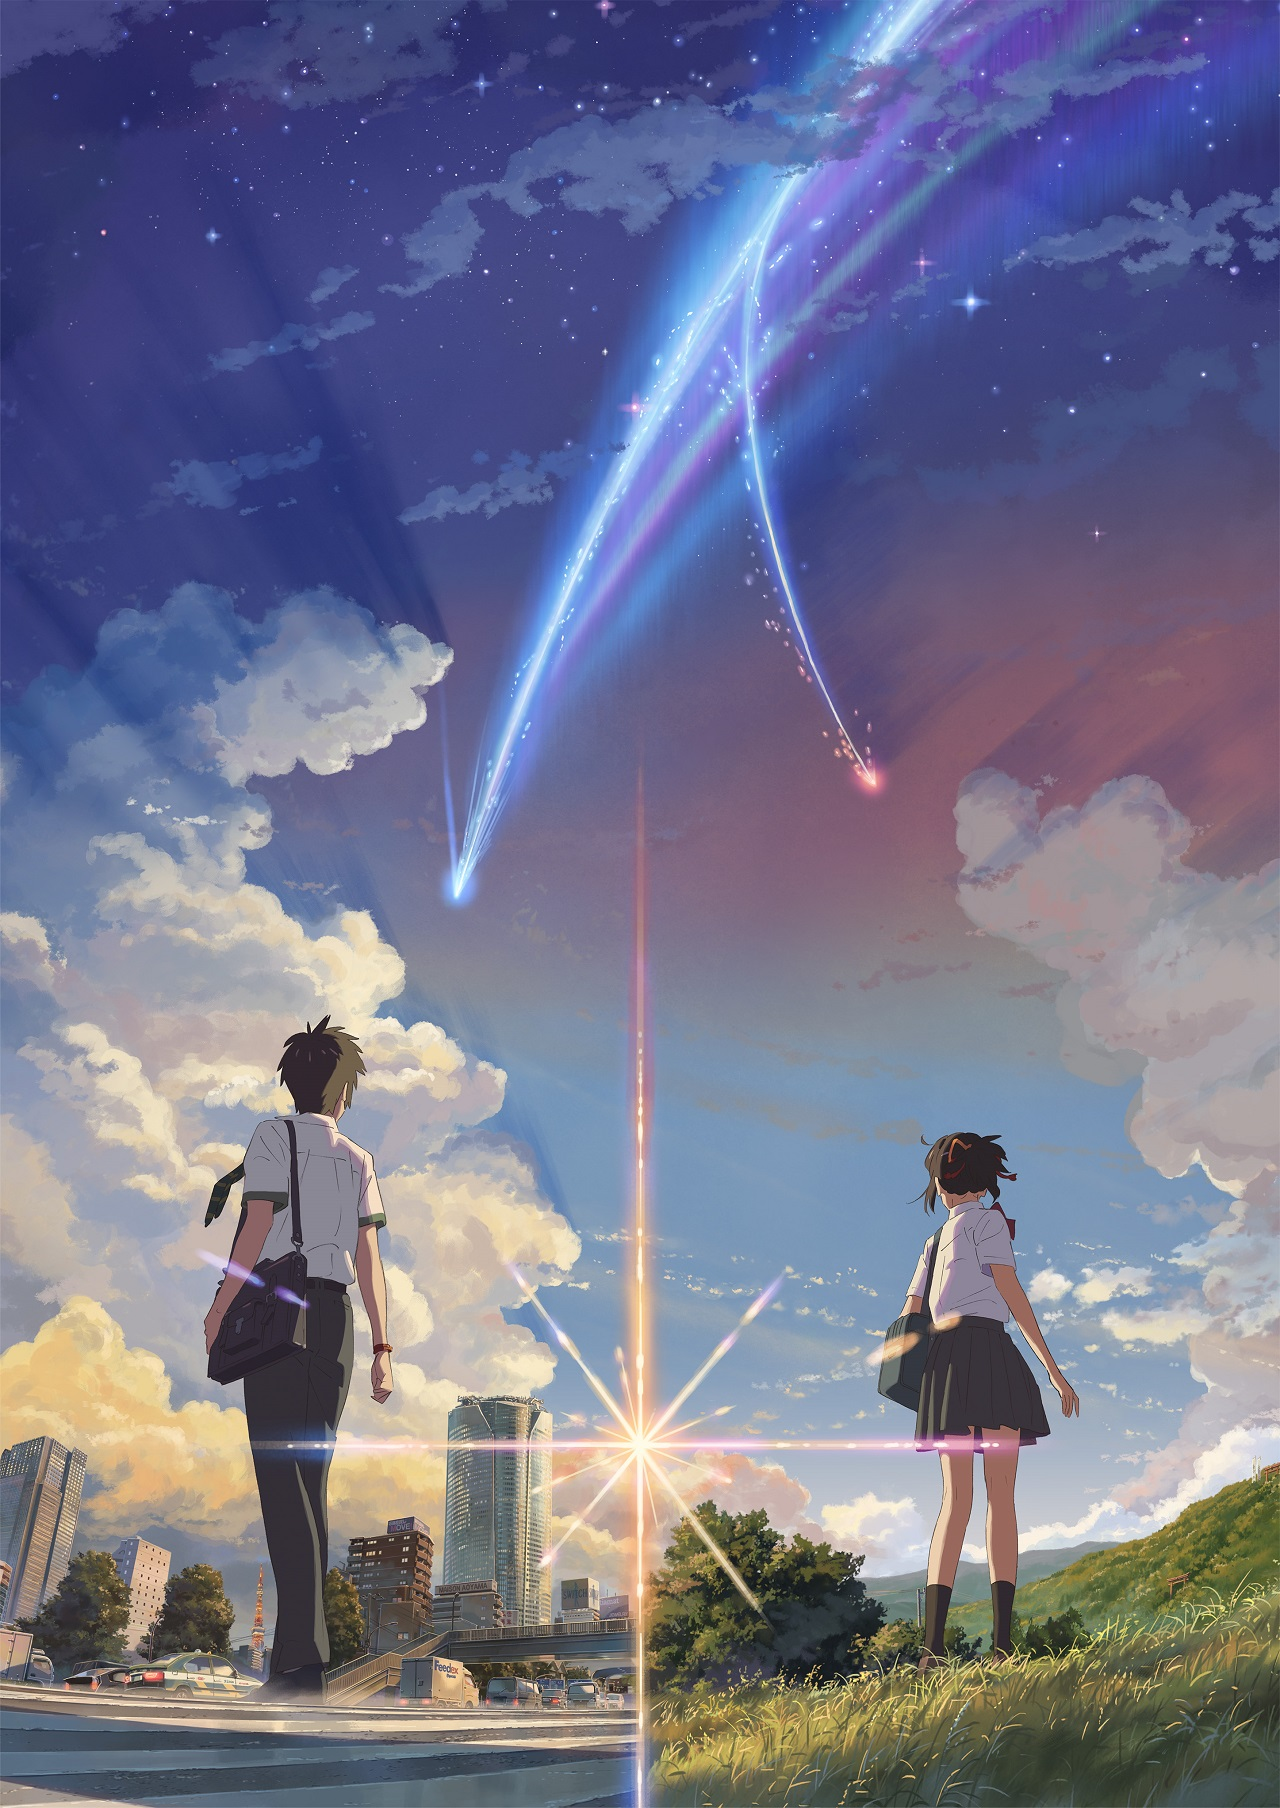 [Seed-Raws] 你的名字。 / 君の名は。 / Your Name. / Kimi no Na wa. (BD 720p AVC AACx3 [5.1+2.0+5.1]).mp4 [日英中字幕][v0]